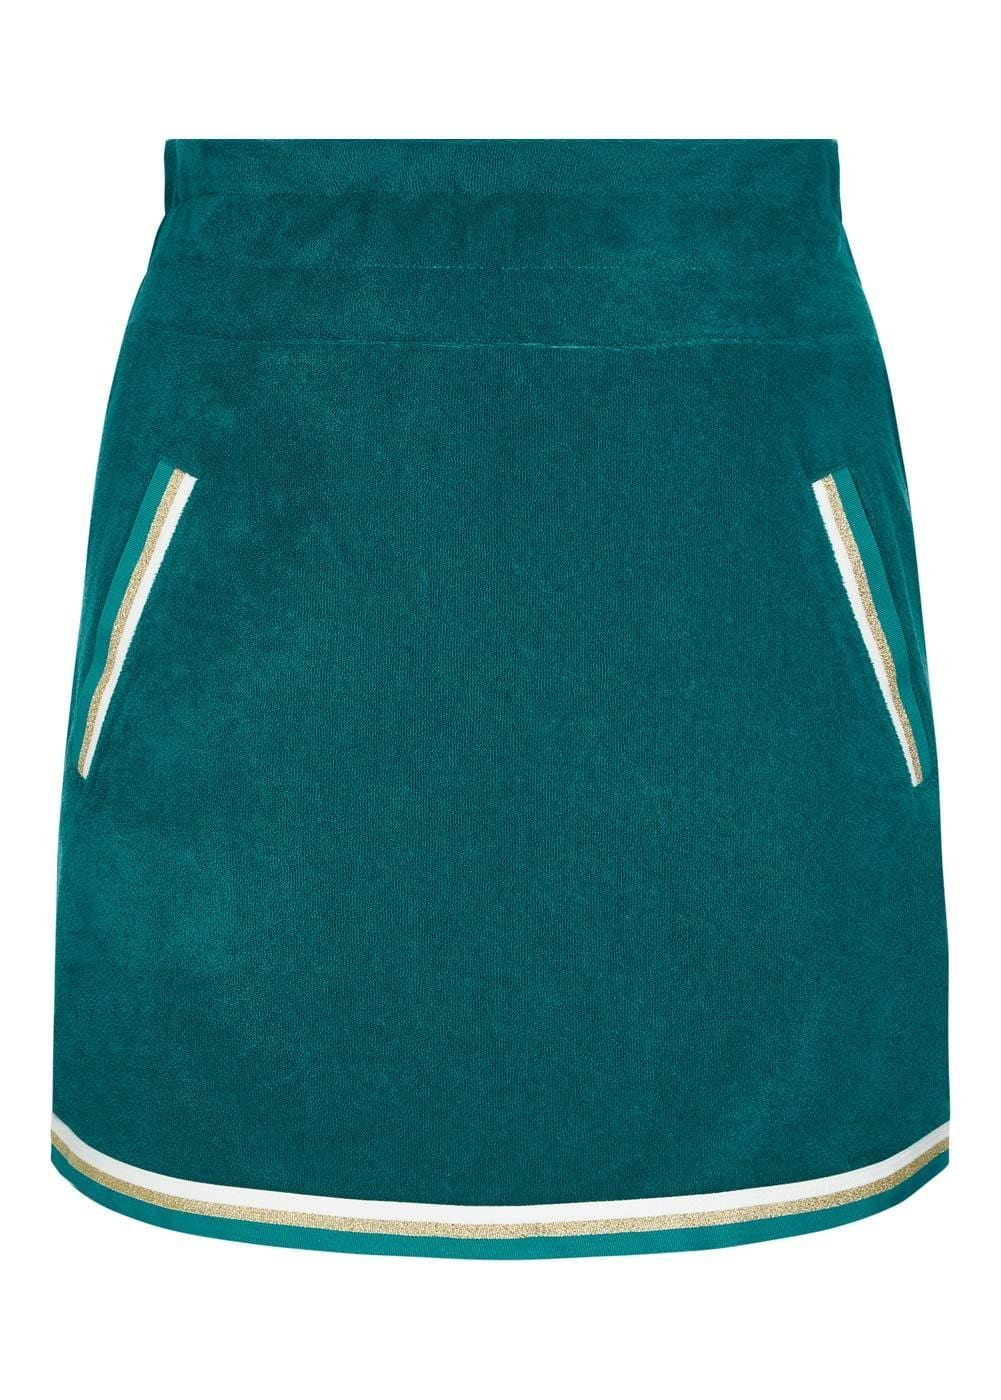 Girls Teal Retro Terry Skirt - Front